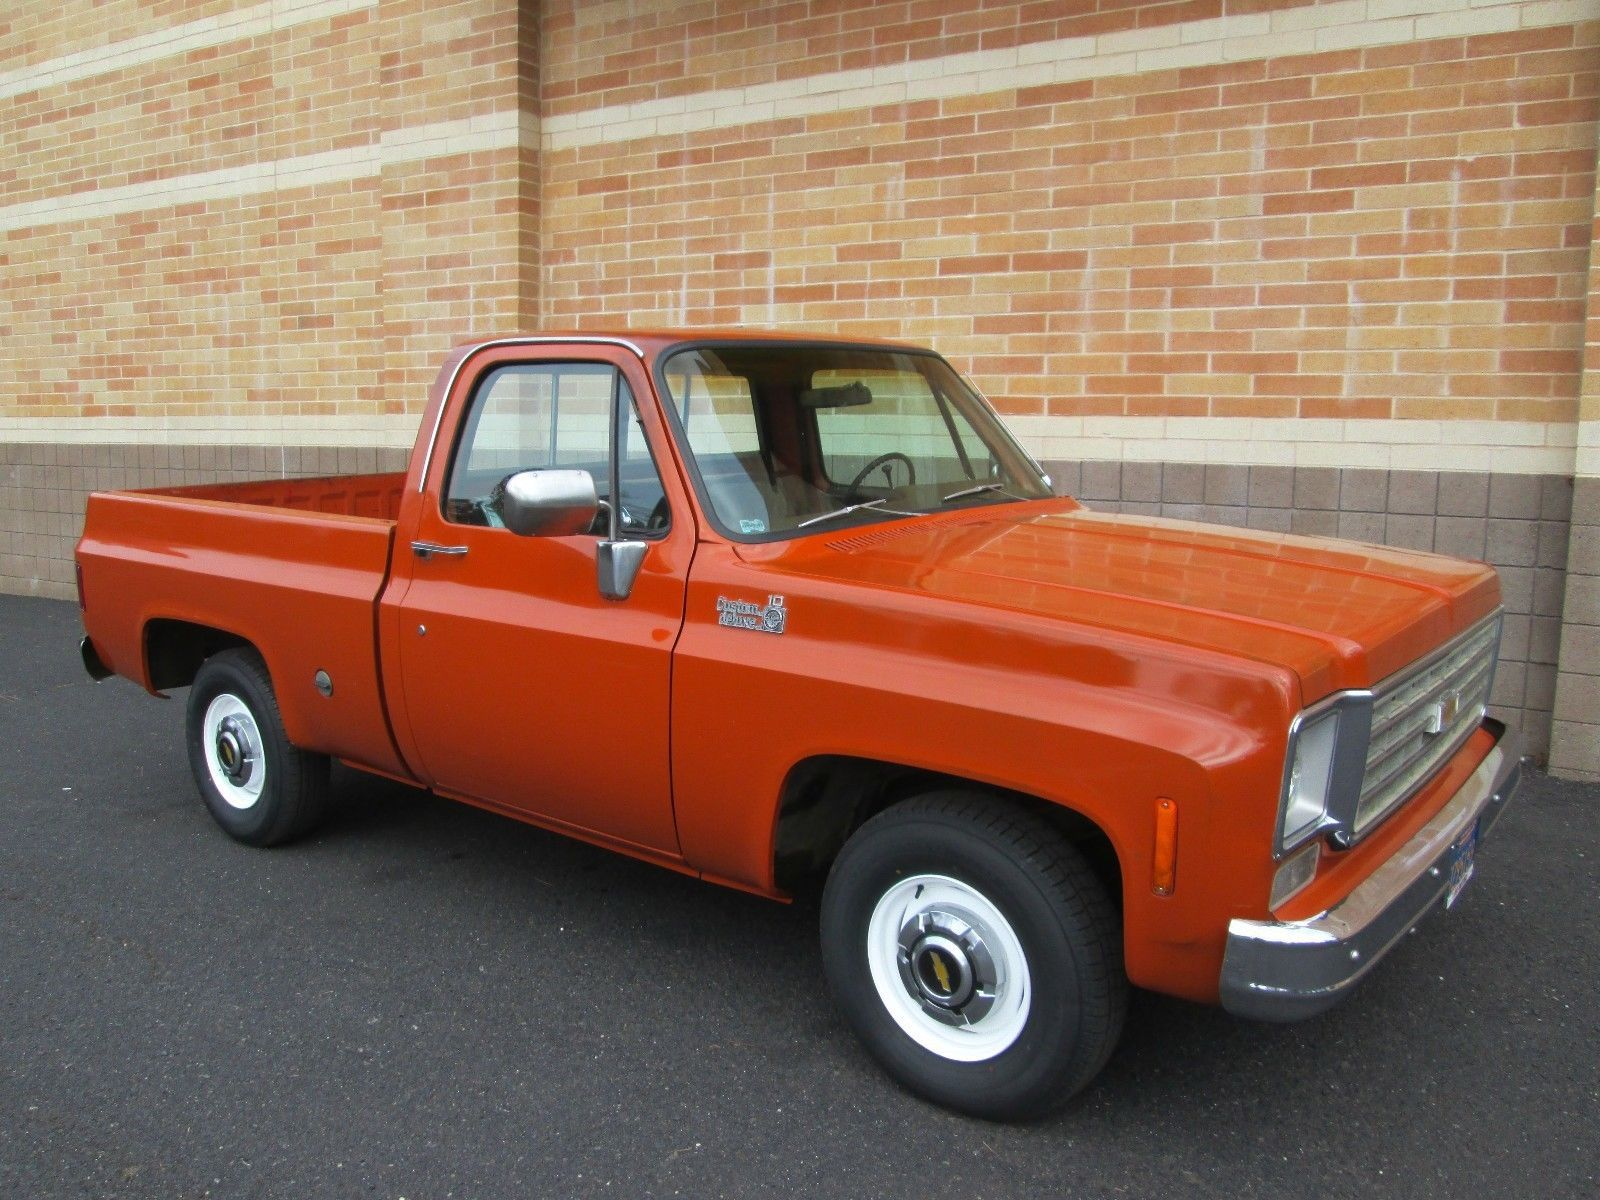 Bangshift Com This Might Be The Most Perfect Short Bed Square Body C10 Daily Driver Ever Bangshift Com In 2020 Pink Chevy Trucks Square Body Chevy Pickup Trucks